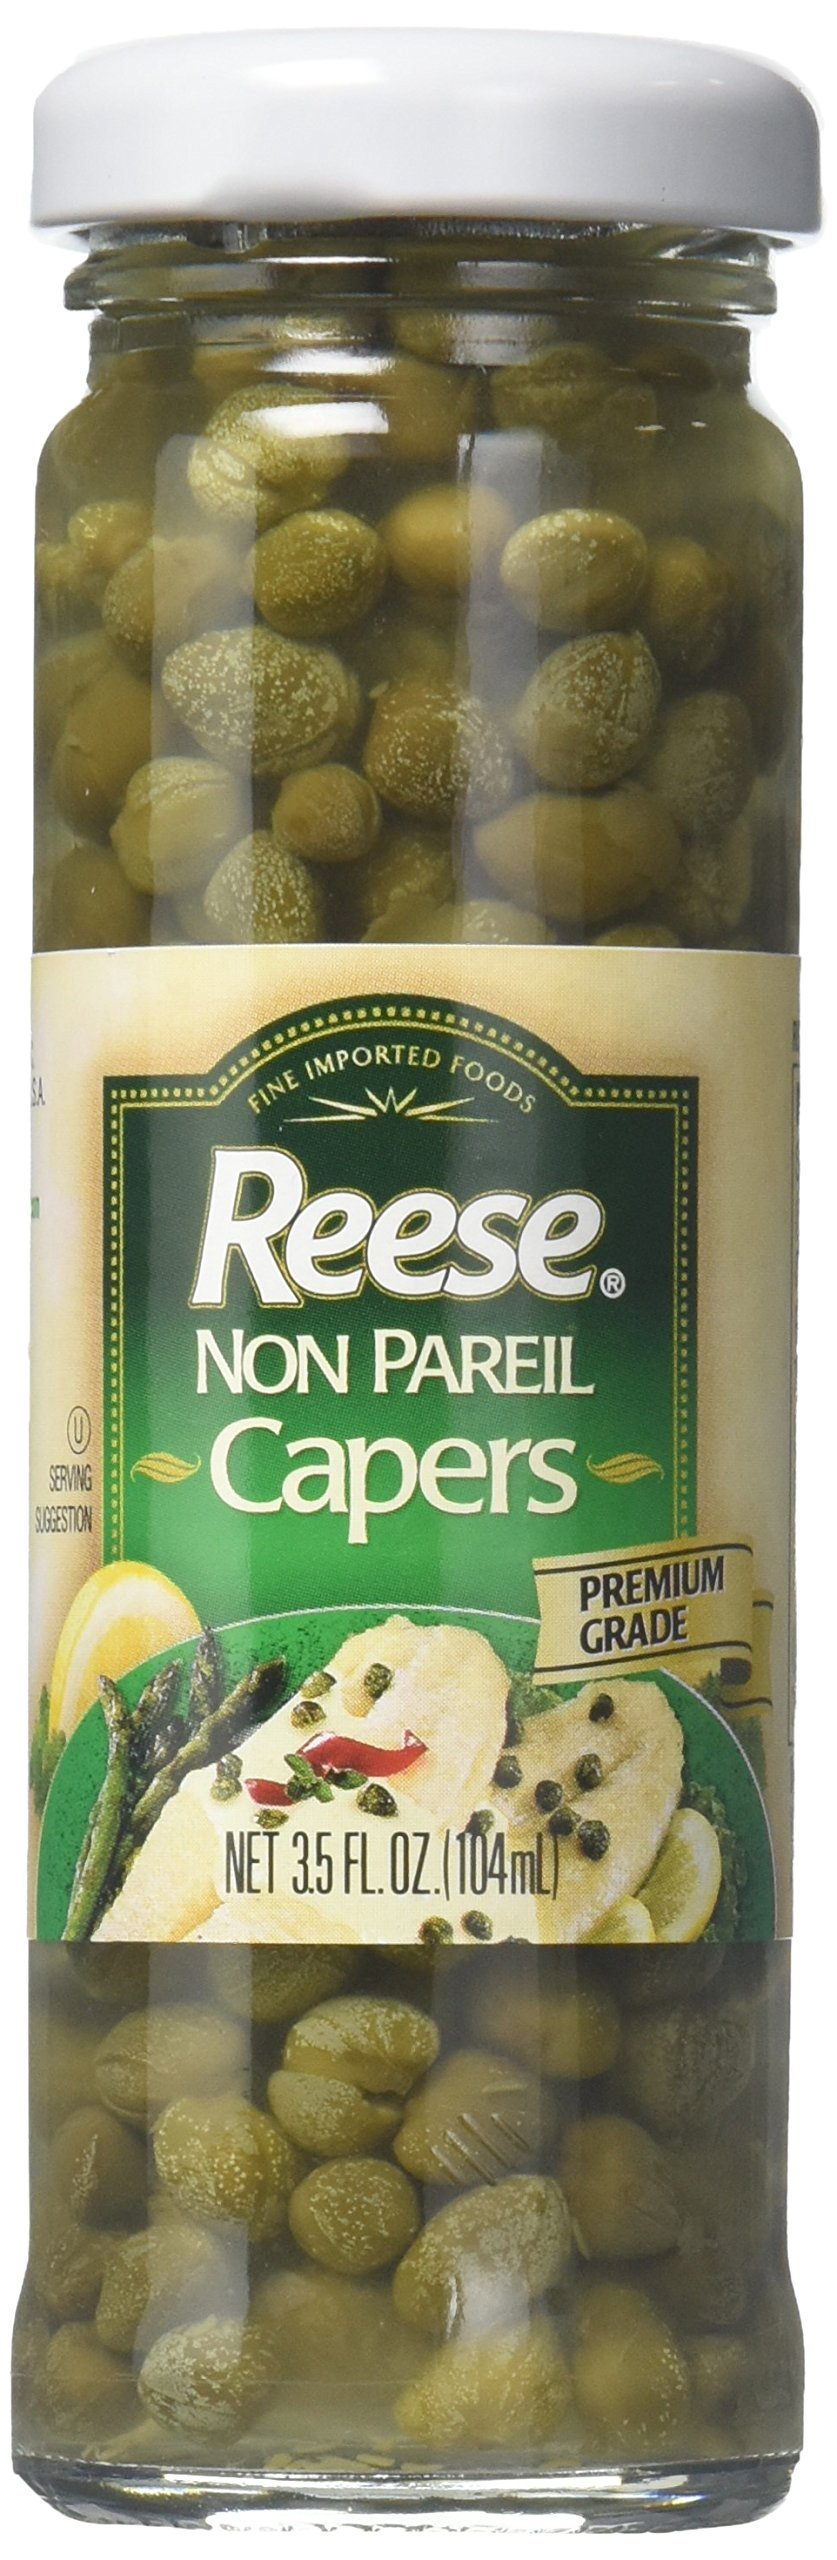 Reese Capers, 3.5 oz